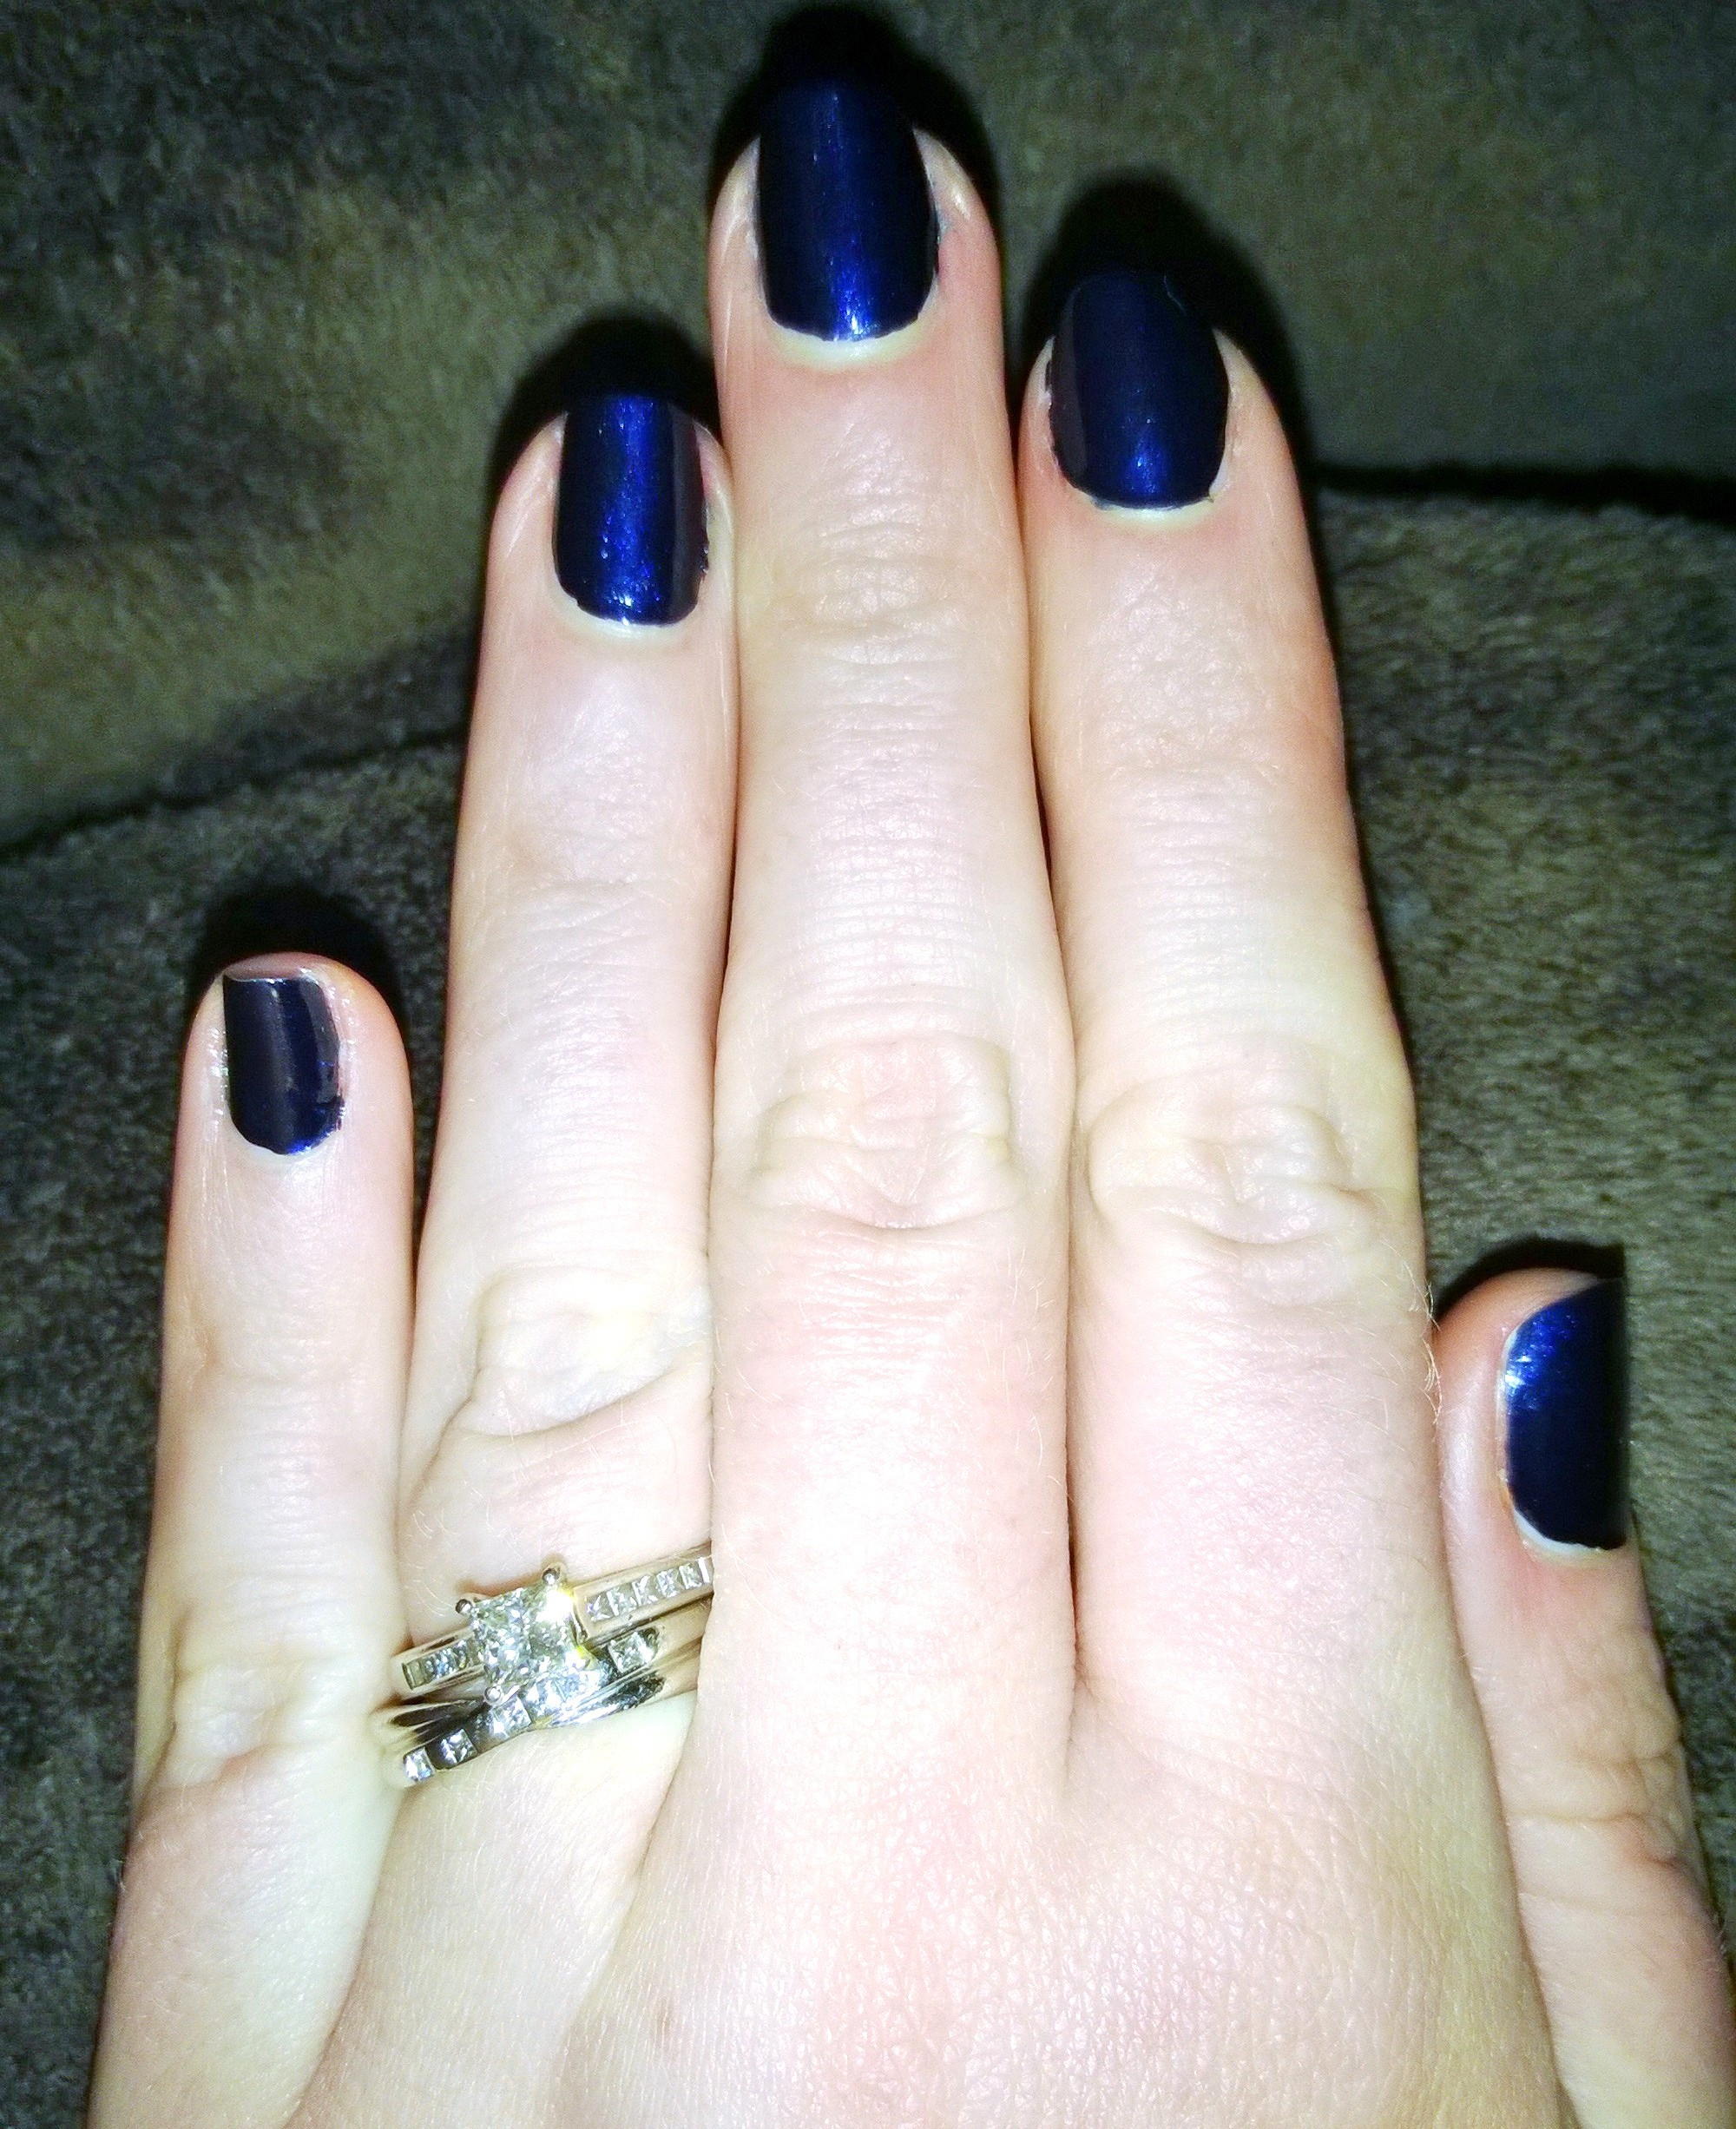 BOURJOIS 1 SECOND GEL NAIL POLISH IN BLEU MOONLIGHT: REVIEW AND ...